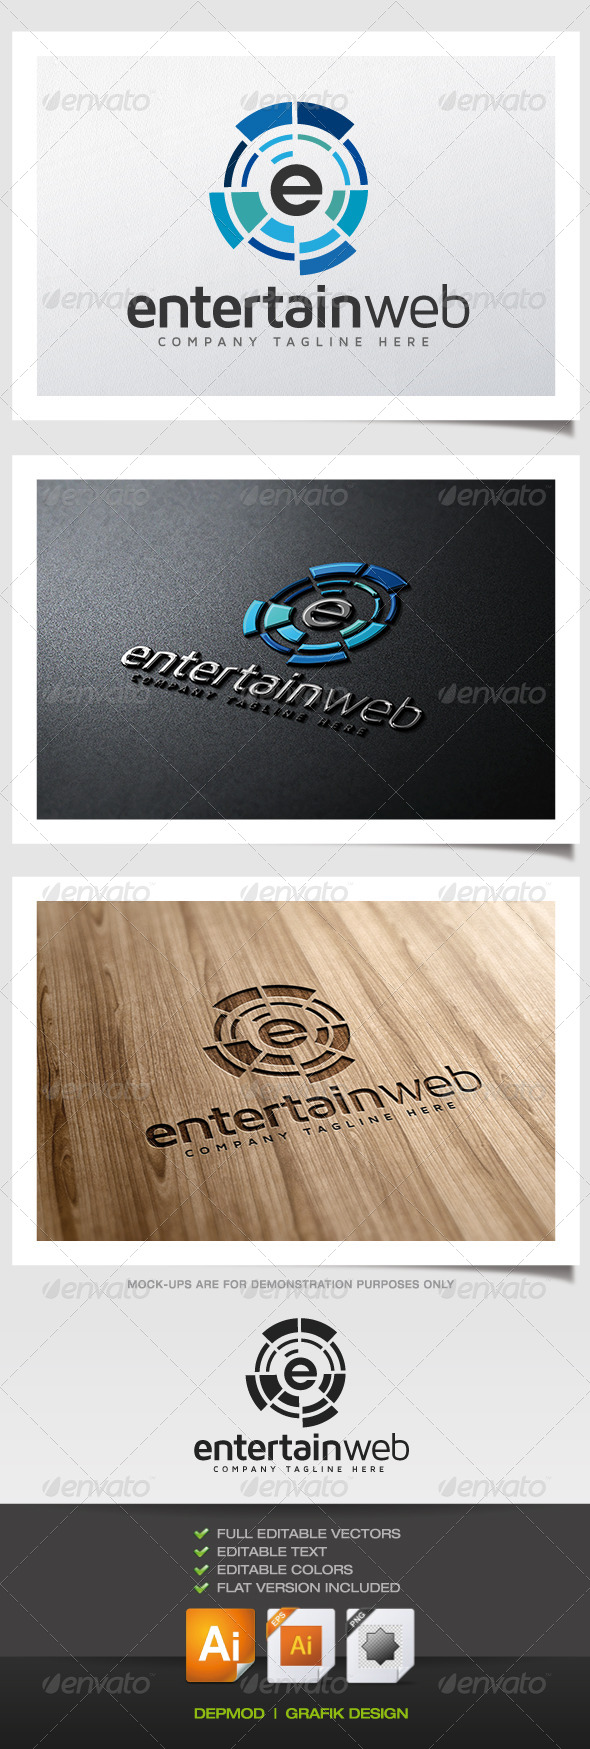 Entertain Web Logo